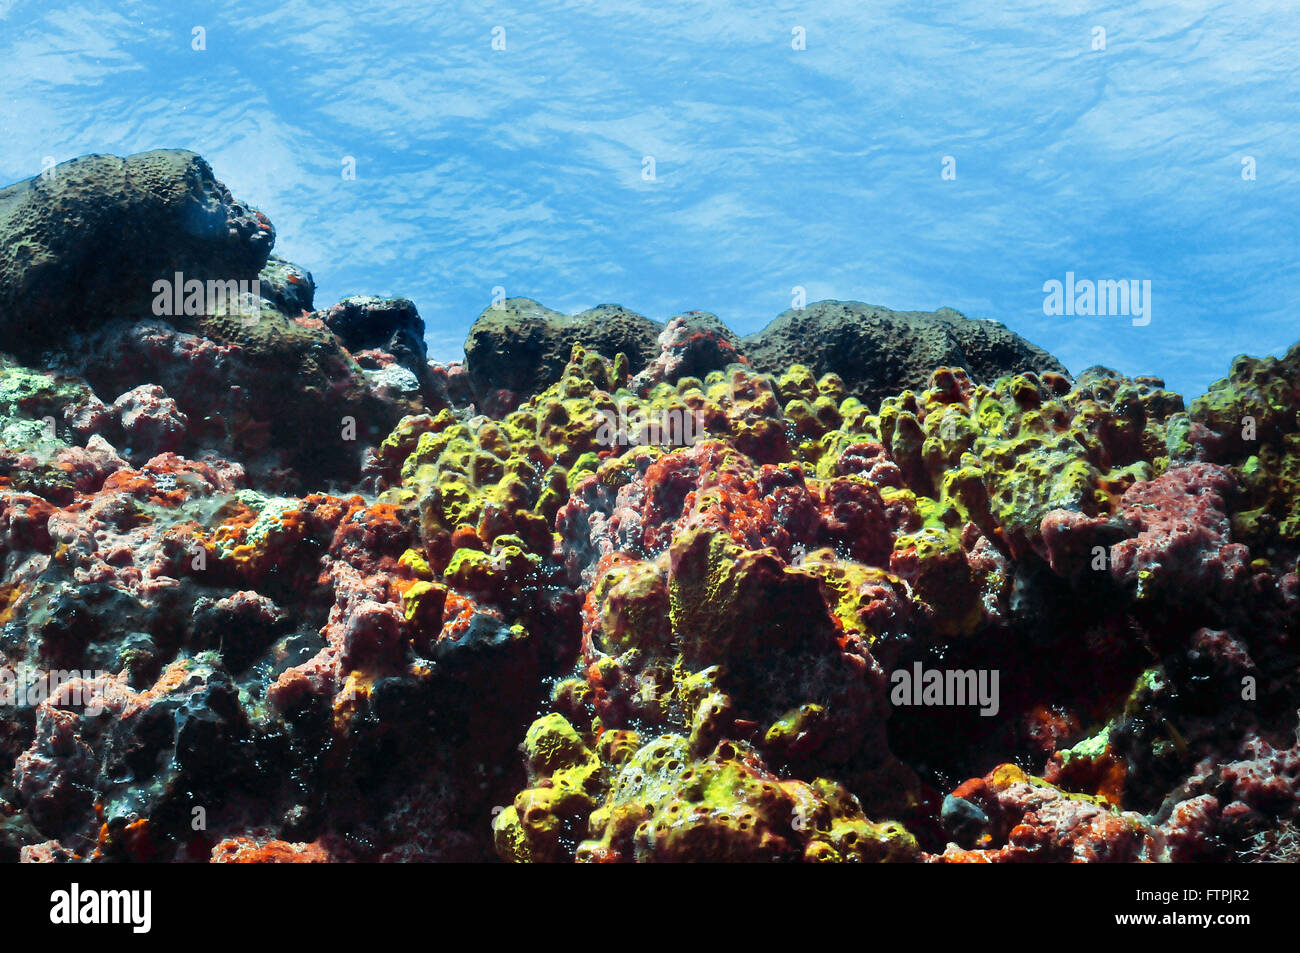 Underwater pictures on the Brazilian coast - coral reef in Fernando de Noronha - Stock Image